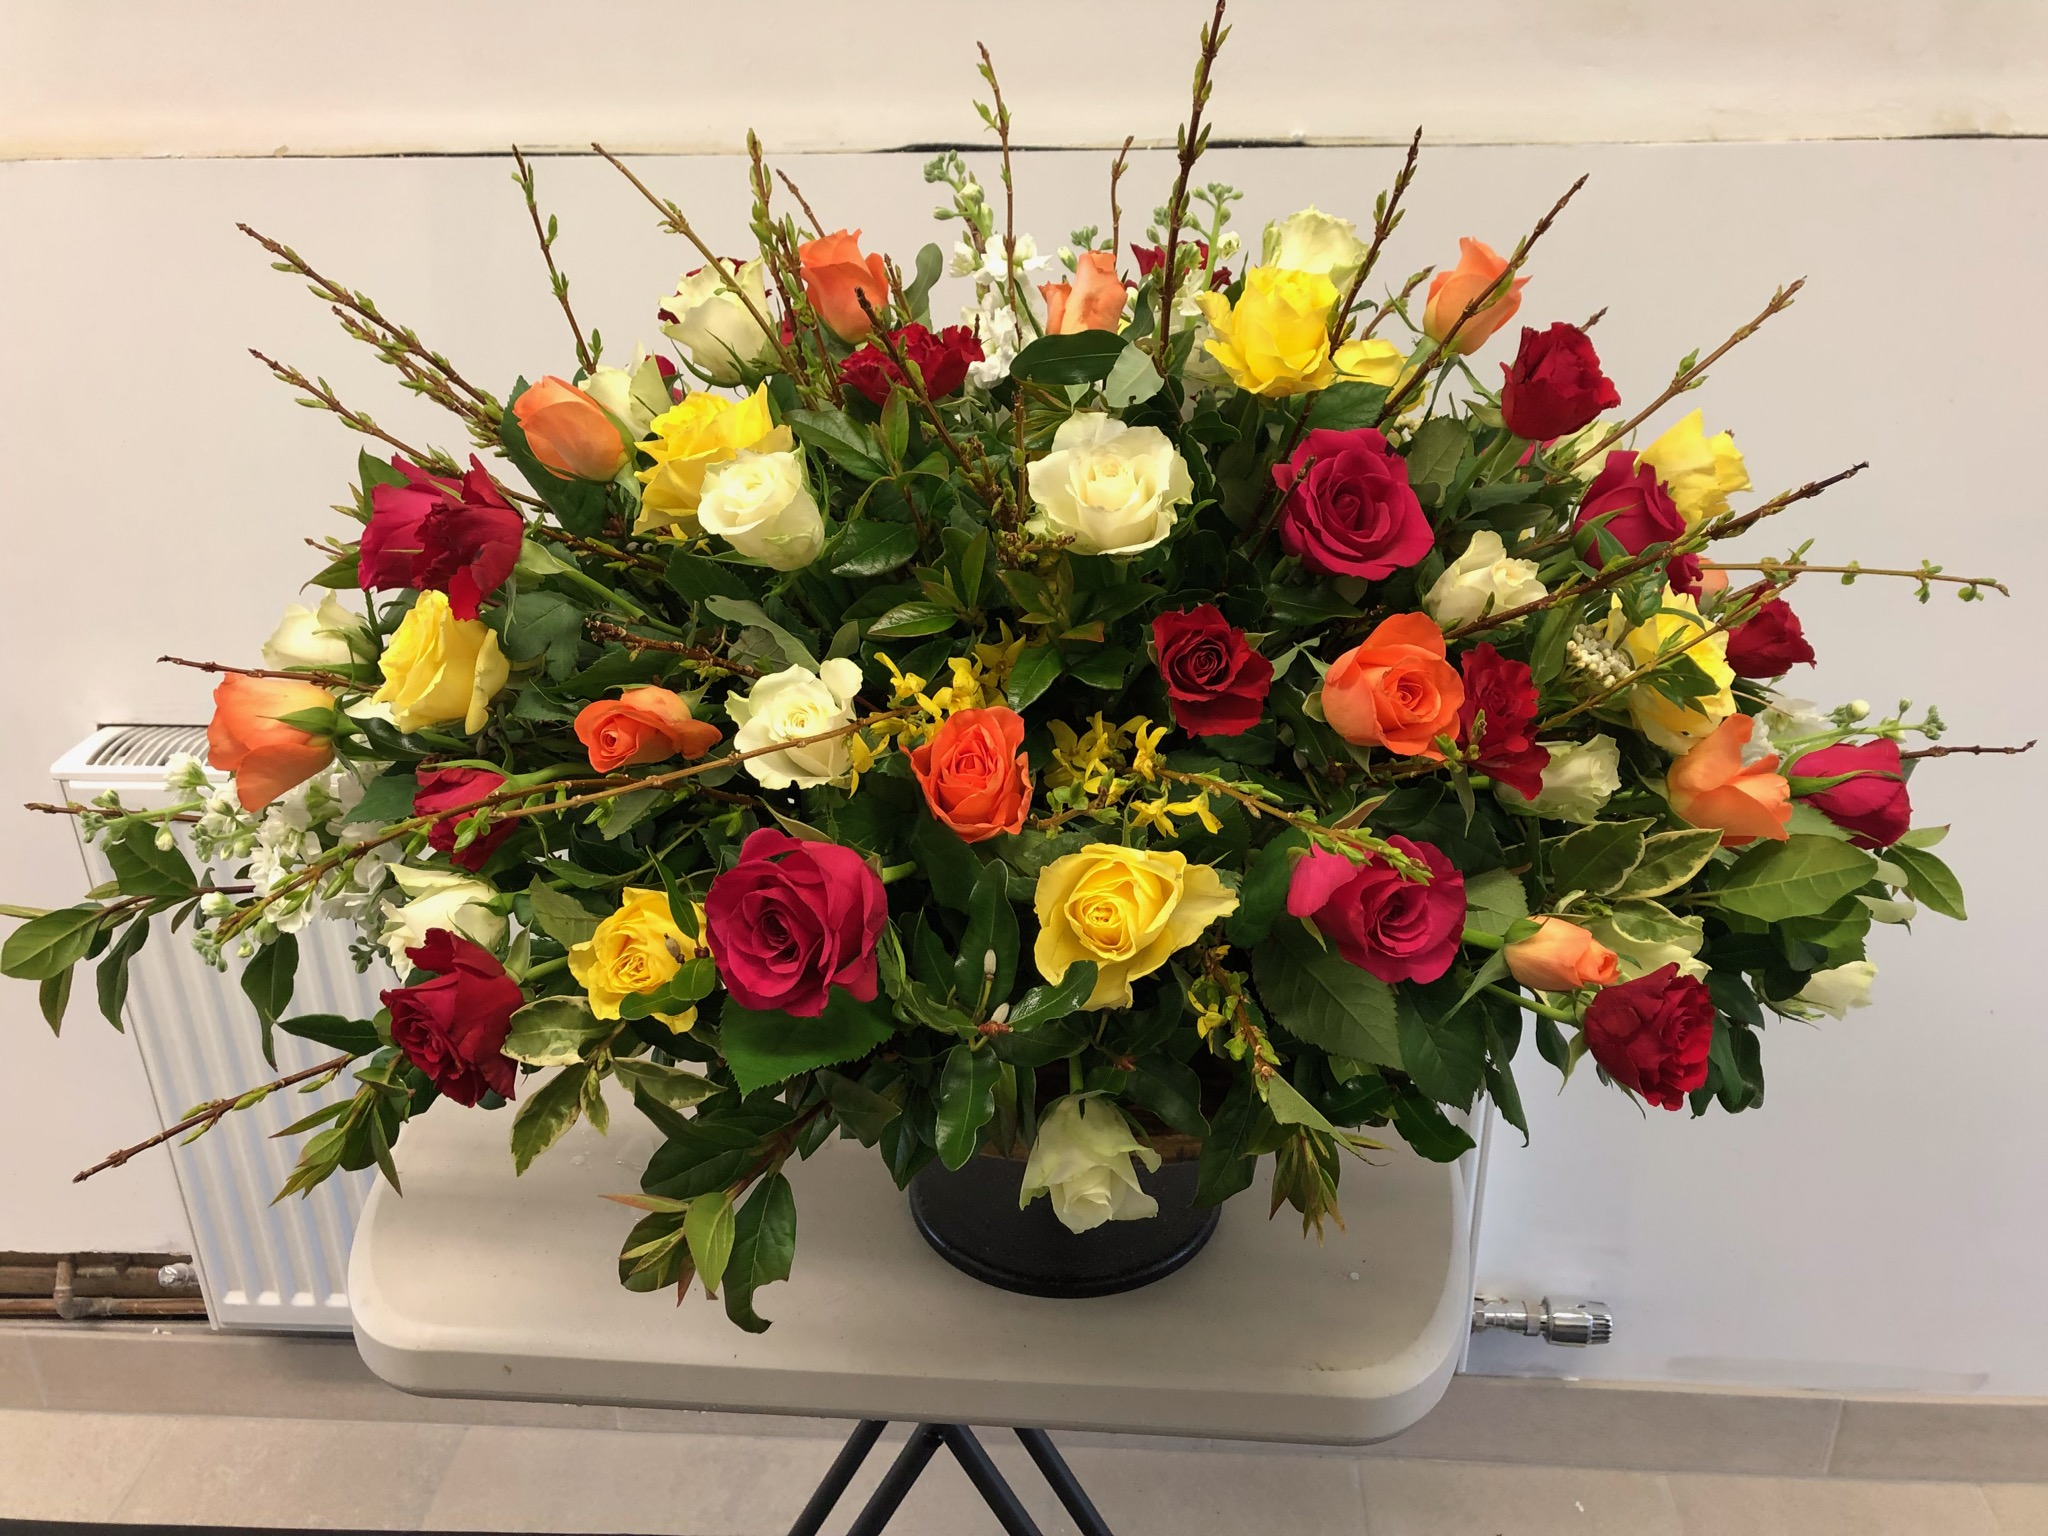 A recent Willow Kirkcudbright bouquet arrangement